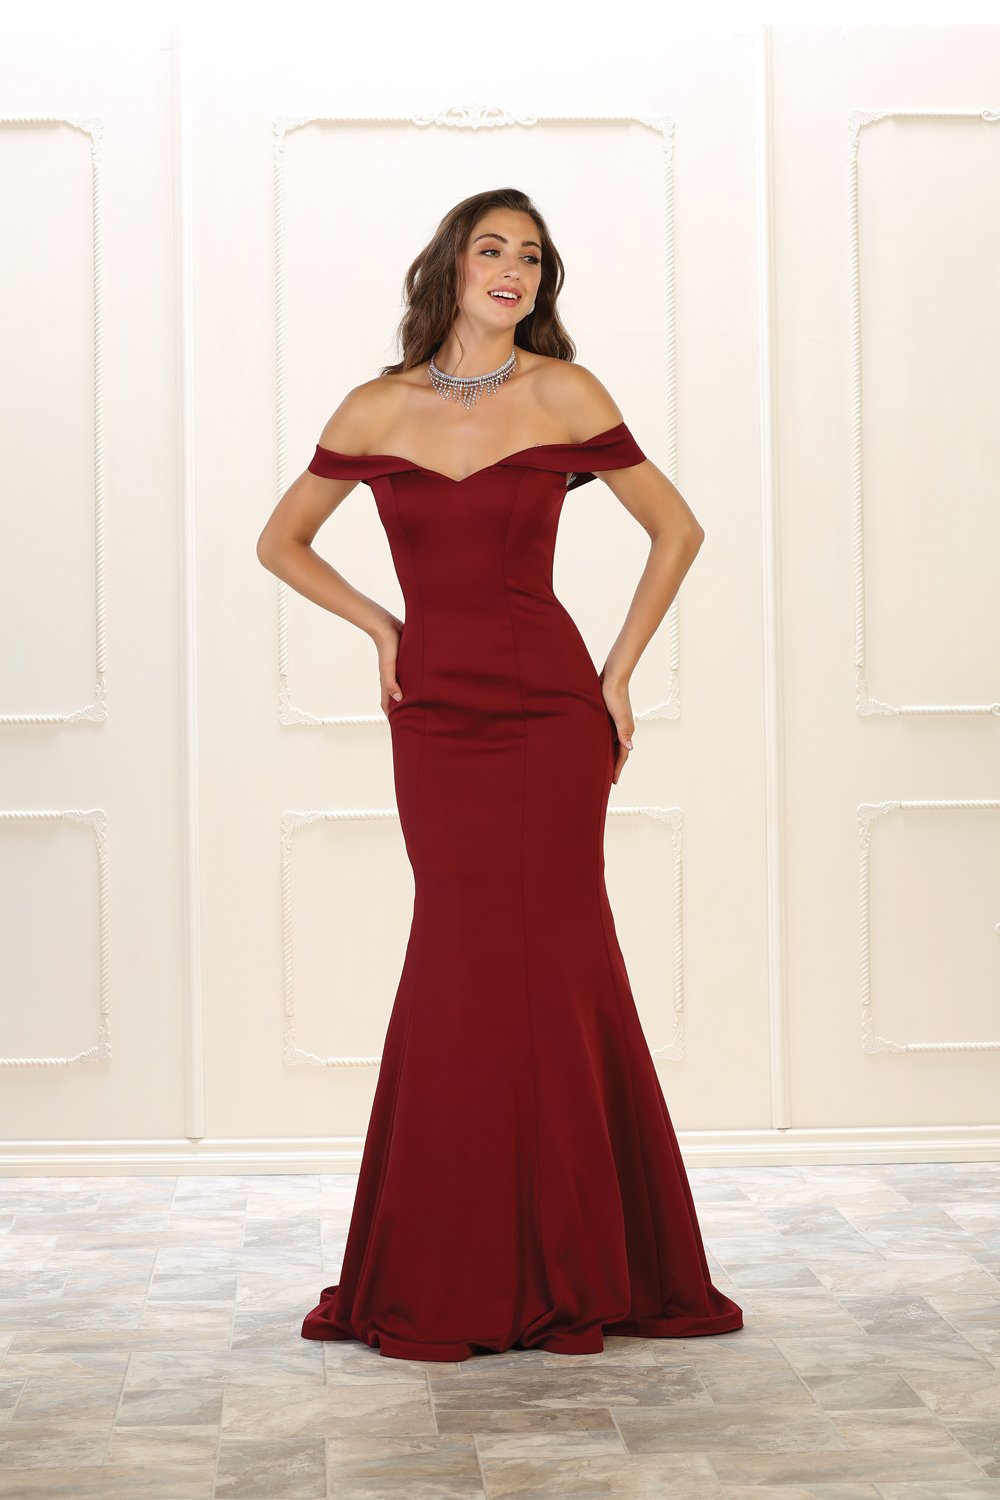 bab6b4b96bcb This amazingly gorgeous long prom dress features an off shoulder neckline.  Fitted mermaid style design perfect for any special occasion.